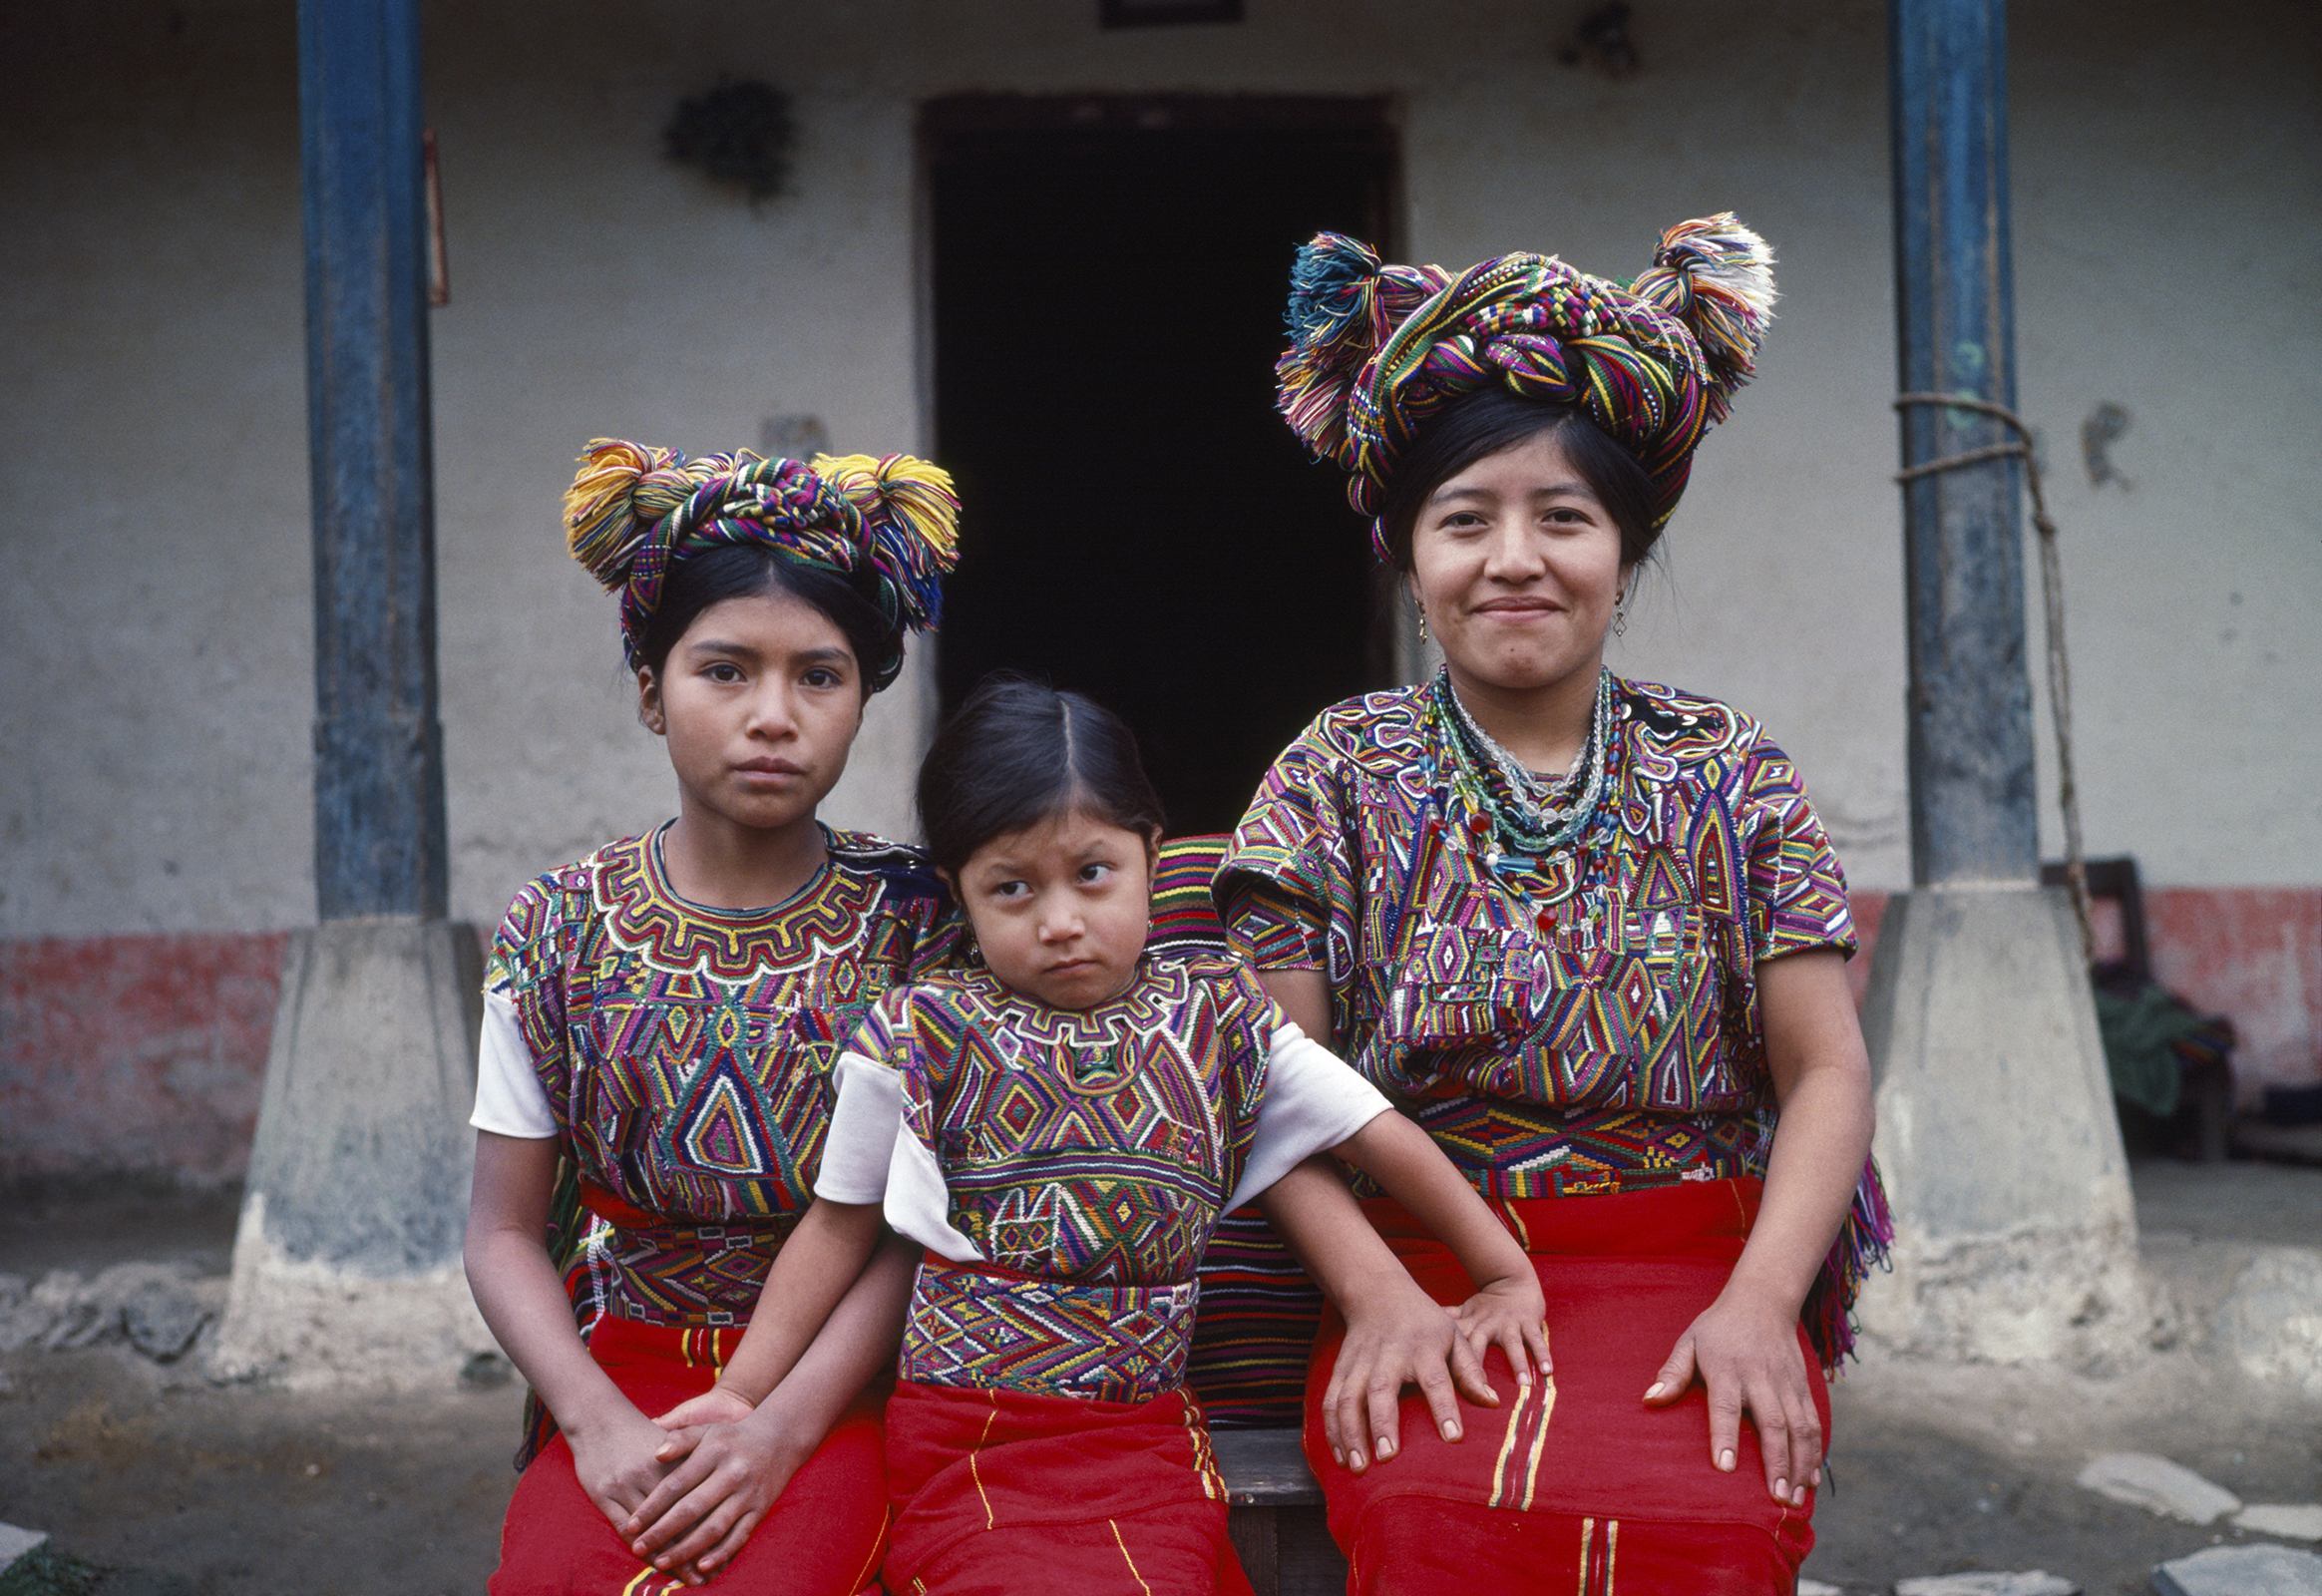 Josefa Cedillo Marcos, left, 13 years, Juana Cedillo Perez, center, 6 years, and cousin of Josefa, and Señora Cedillo Marcos, right and mother of Josefa, sit for a photograph in the Pensíon Ardavin in Nebaj, Guatemala on January 1, 1984. Josefa Cedillo Marcos grew up to be a school teacher and witnessed frequent armed violence of the civil war in the Ixil Maya region.